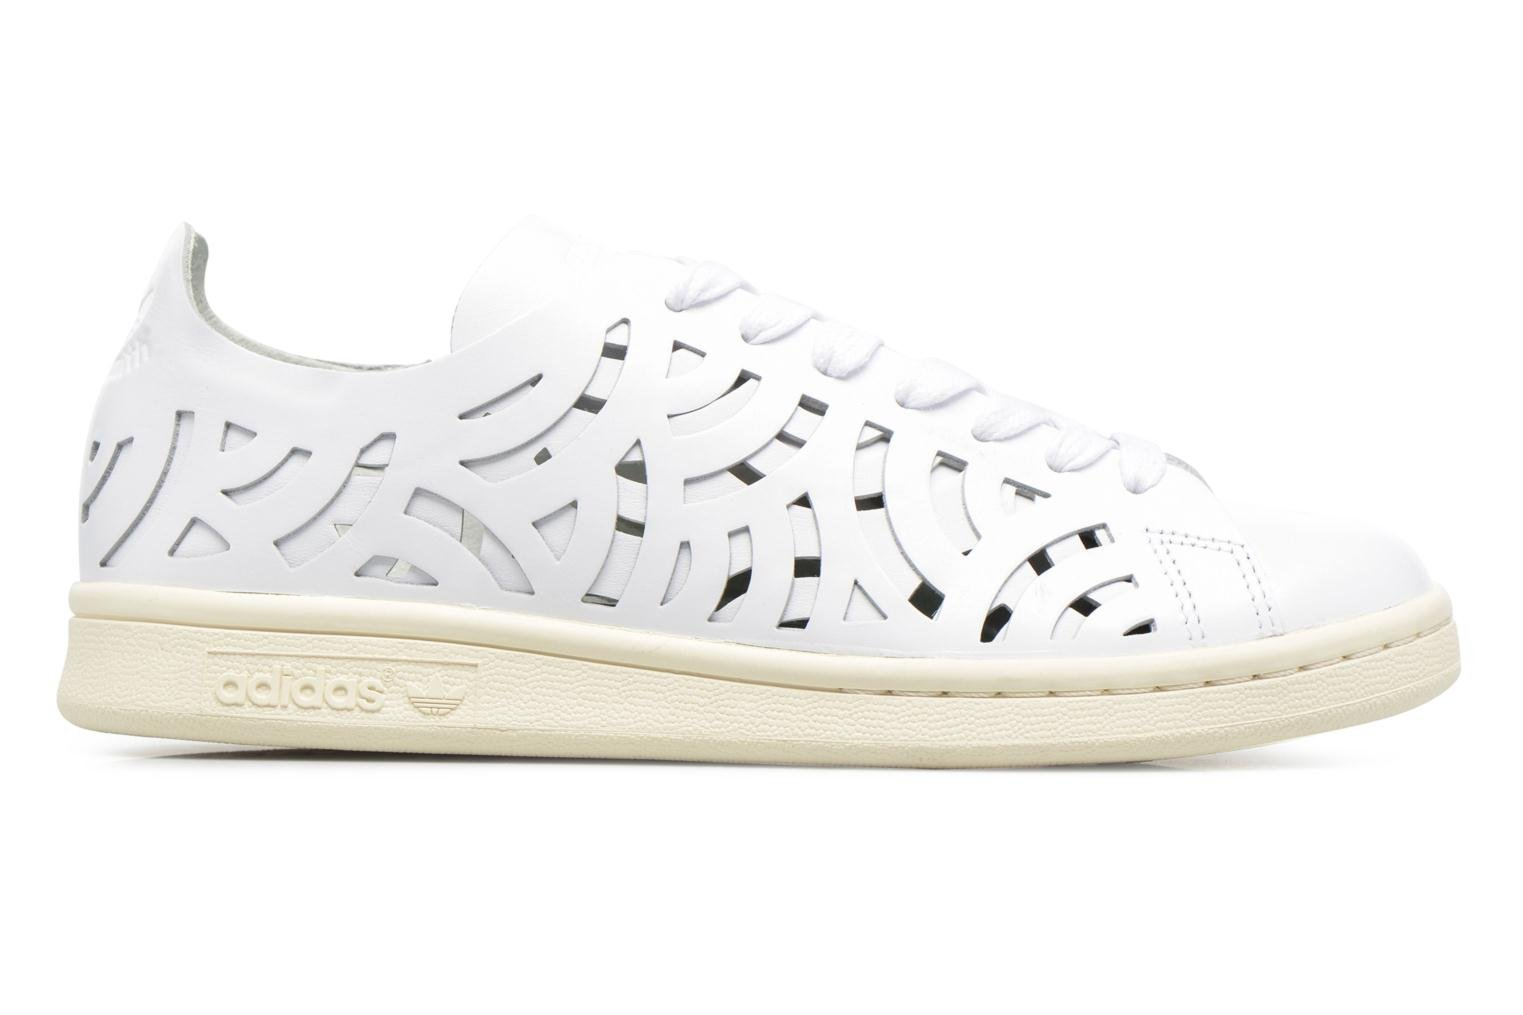 Stan Smith Cutout W Ftwbla/Ftwbla/Blacre